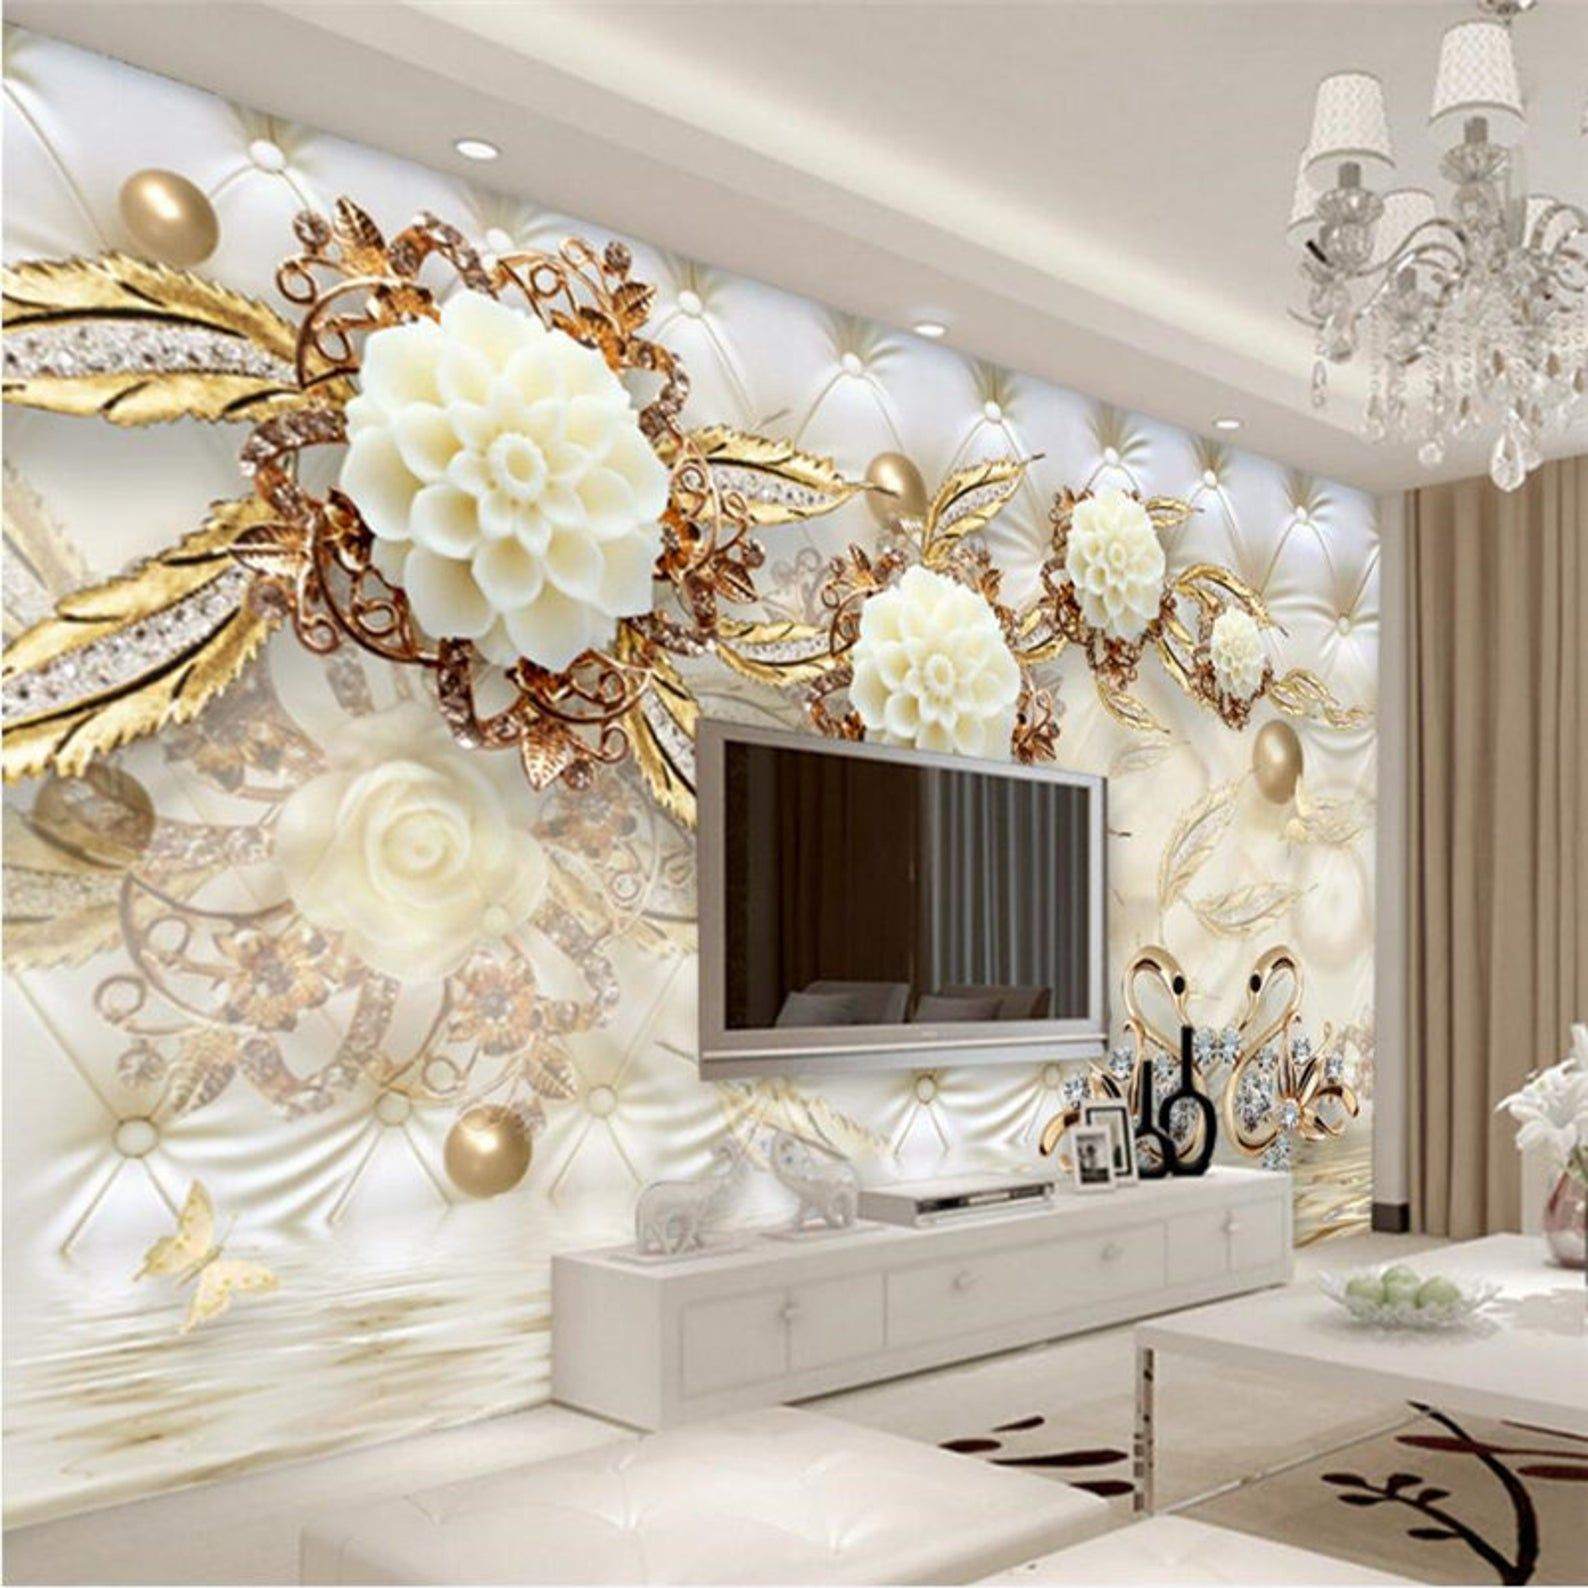 Custom Photo Wallpaper 3d Fresco Wall Paper Sticker 3d Luxury Etsy In 2020 3d Wallpaper Home Wall Painting Living Room Custom Photo Wallpaper